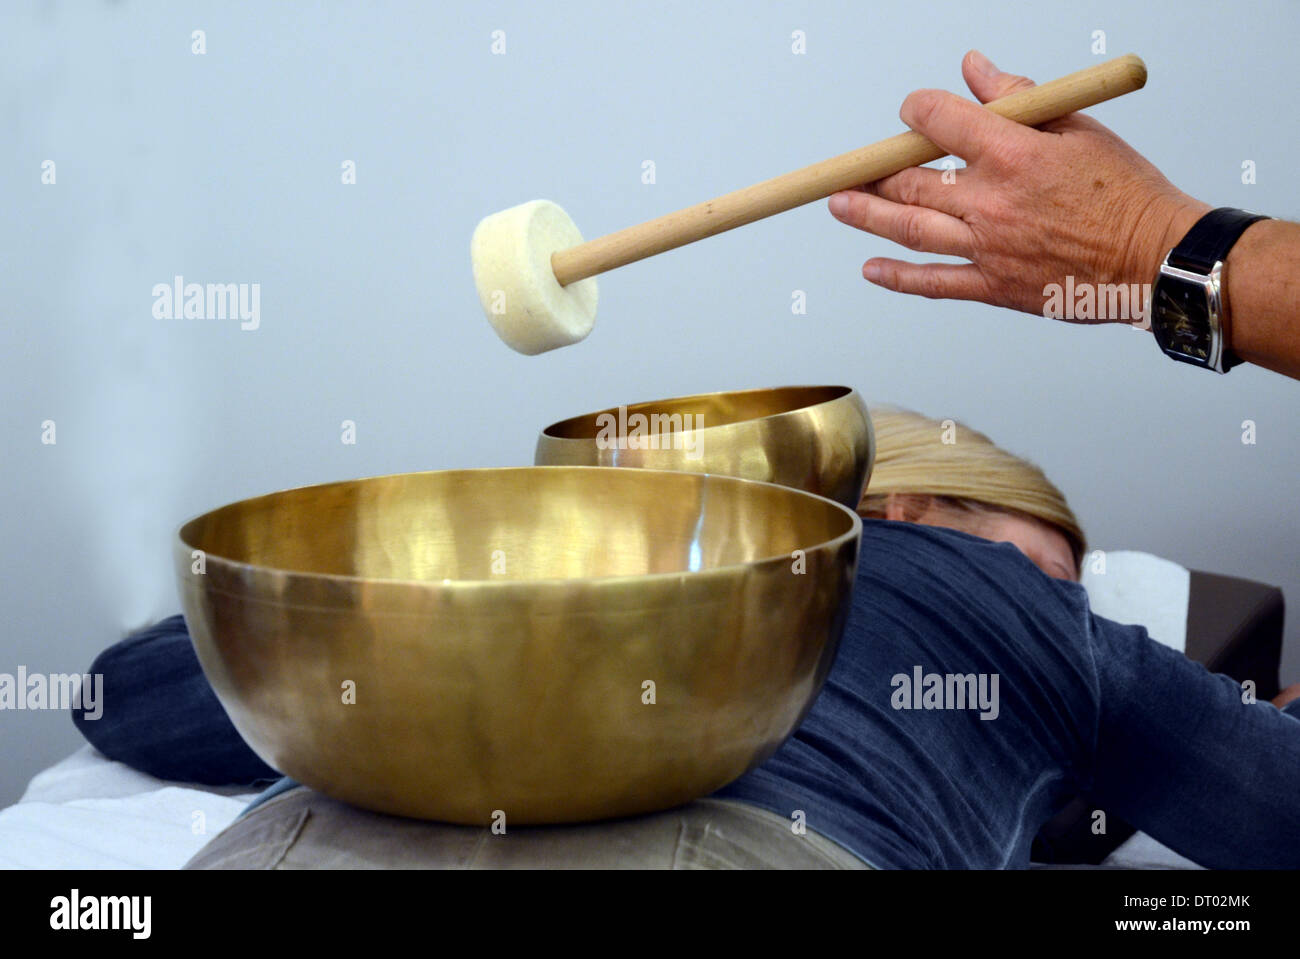 Bronze sound bowls, which are used for sound therapy and sound massages, are standing on the back of a woman at the Lifetime-Beauty Fair in Dusseldorf, North Rhine-Westphalia, on 1 February 2014. - Stock Image